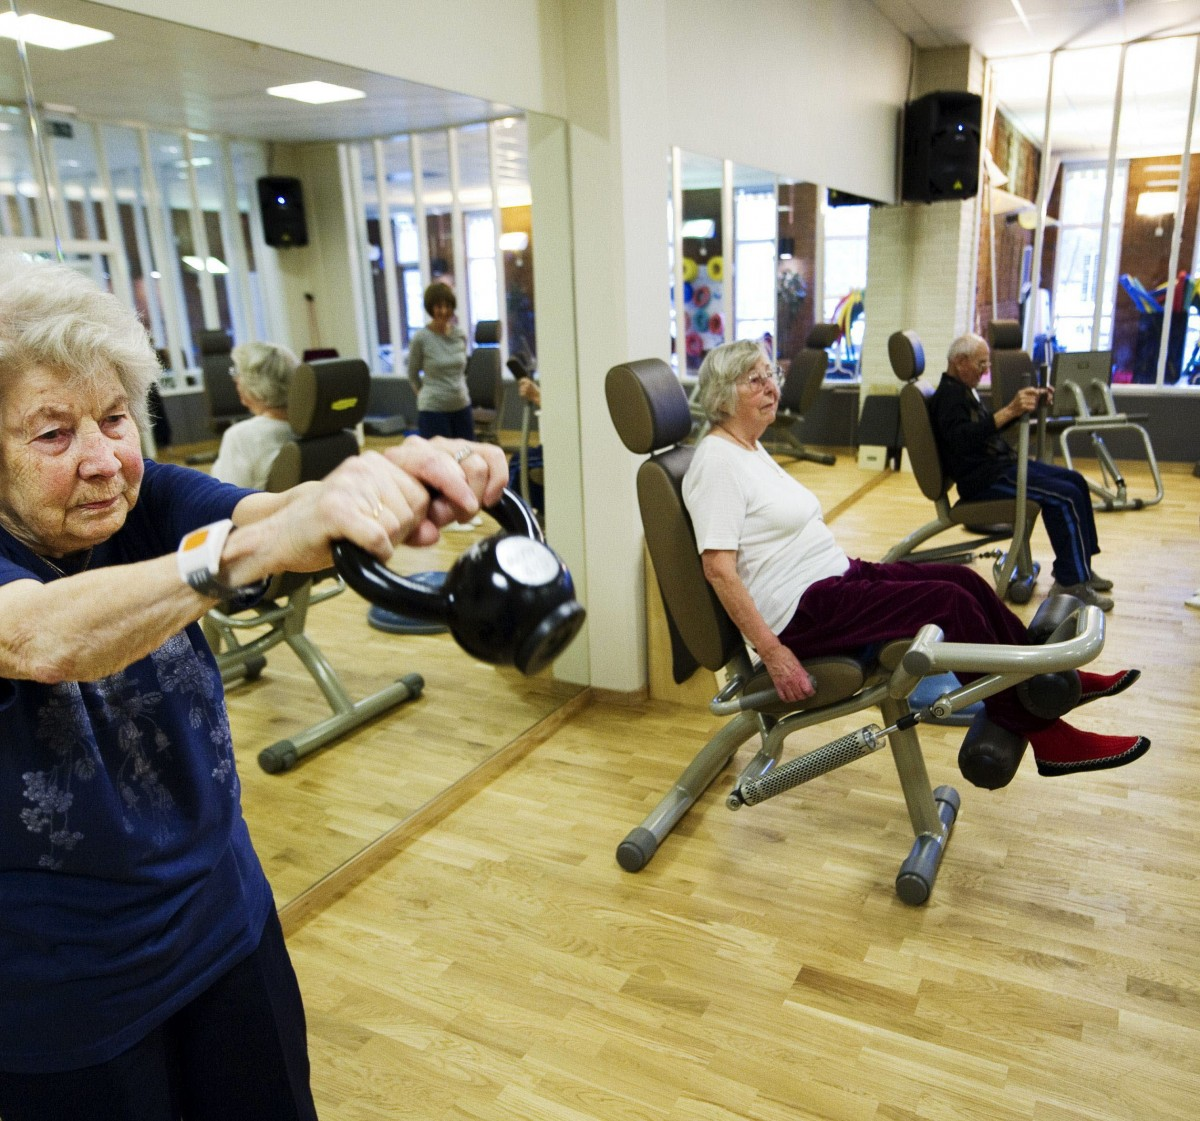 "TO GO WITH AFP STORY BY PIA OHLIN Swedish Margareta Nordin (L), 92, Alice Wettergren (2ndL), 92, and Per Olof Lalin, 97 work out during her weekly class with a group of Swedish pensioners, at the Sickla Haelsocenter health club on the outskirts of Stockholm on November 11, 2011. ""In the past people wanted to take life easy when they retired. Now they want to be active and keep fit until they're 100,"" says Kristoffer Sjoeberg, a personal trainer who leads the group of old-timers through their weekly class at the Sickla Haelsocenter health club on the outskirts of Stockholm.   AFP PHOTO/ JONATHAN NACKSTRAND  TELETIPOS_CORREO:HTH,HUMAN RIGHTS,%%%,%%%"